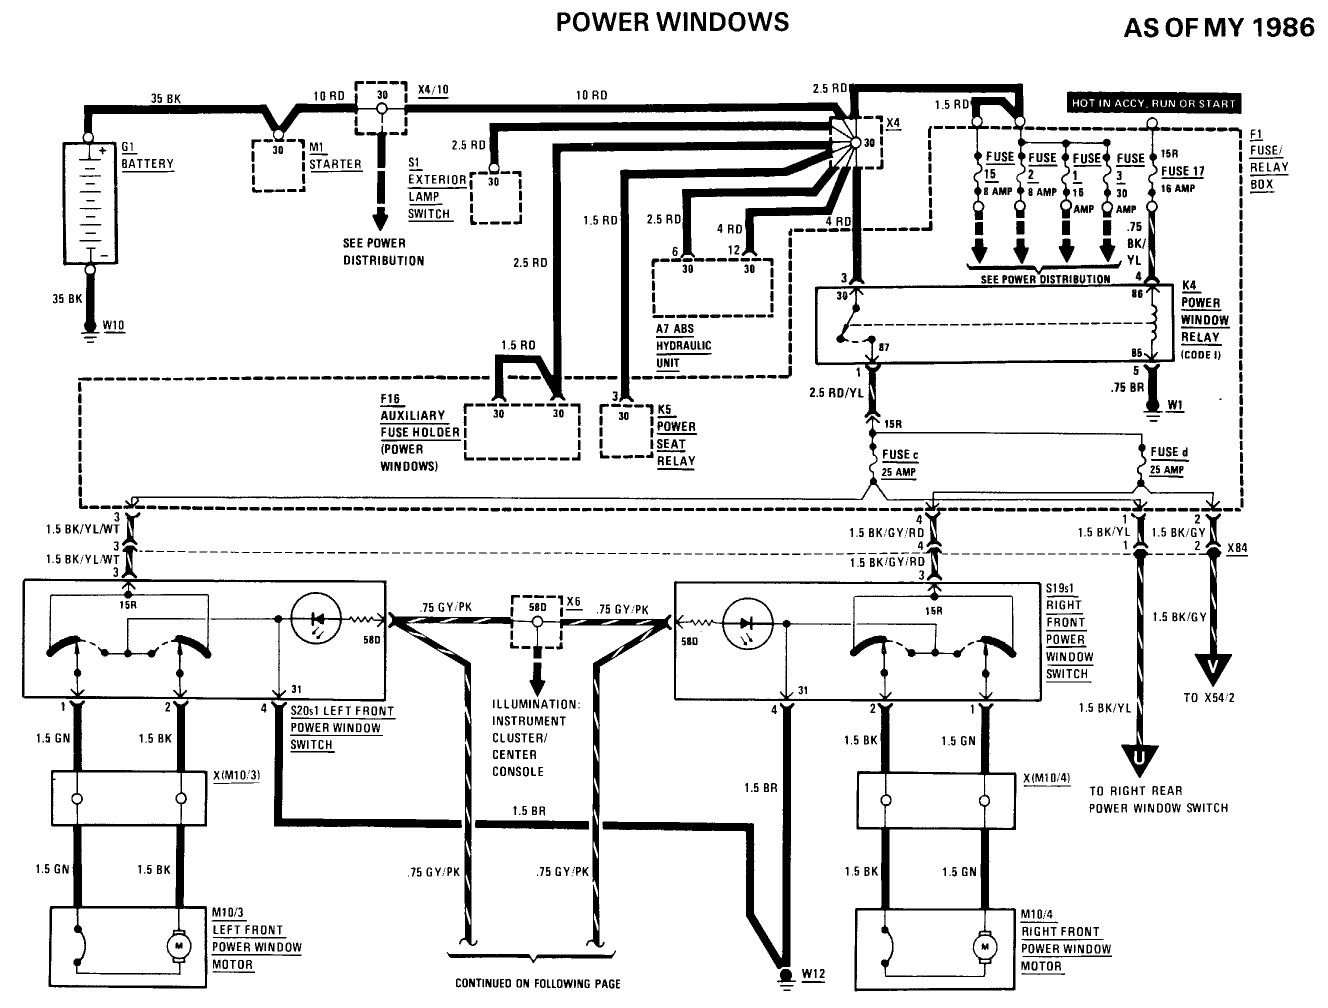 Power Window Relay With Illumination Instrument Cluster And Switch On Free Wiring Diagrams Illuminations Instrument Cluster House Wiring